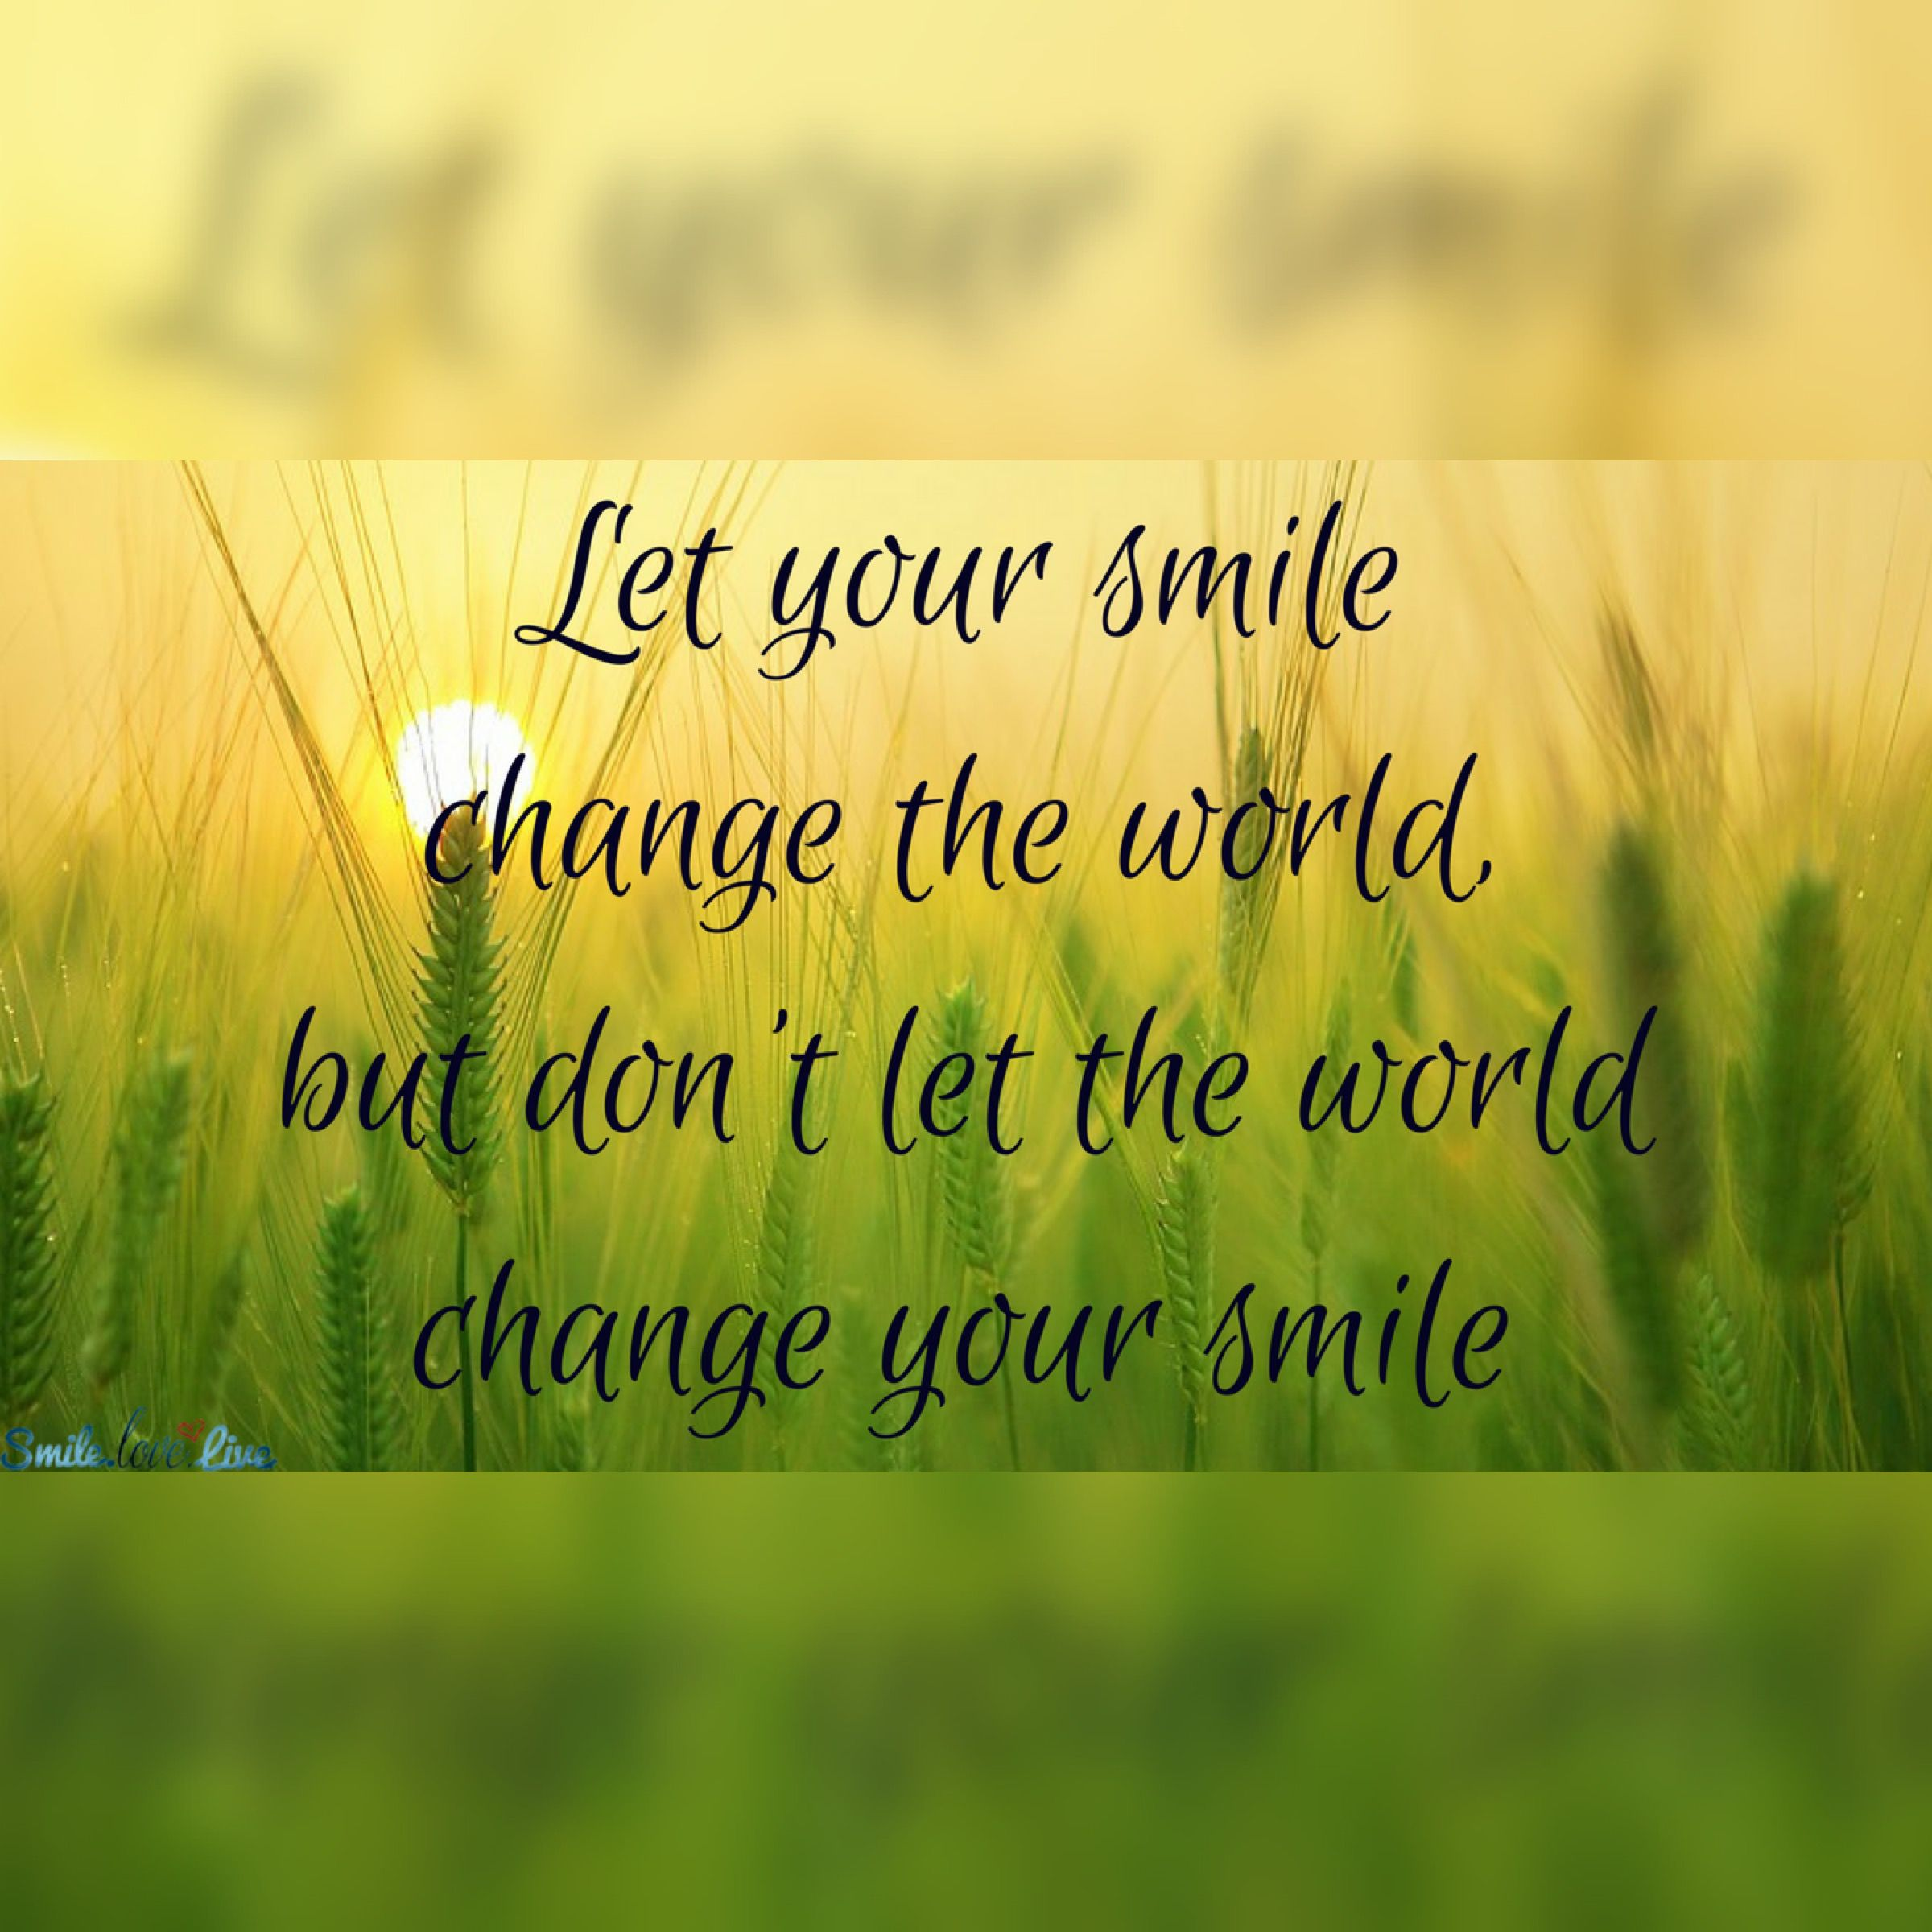 Best Smile In The World Quotes: Let Your Smile Change The World